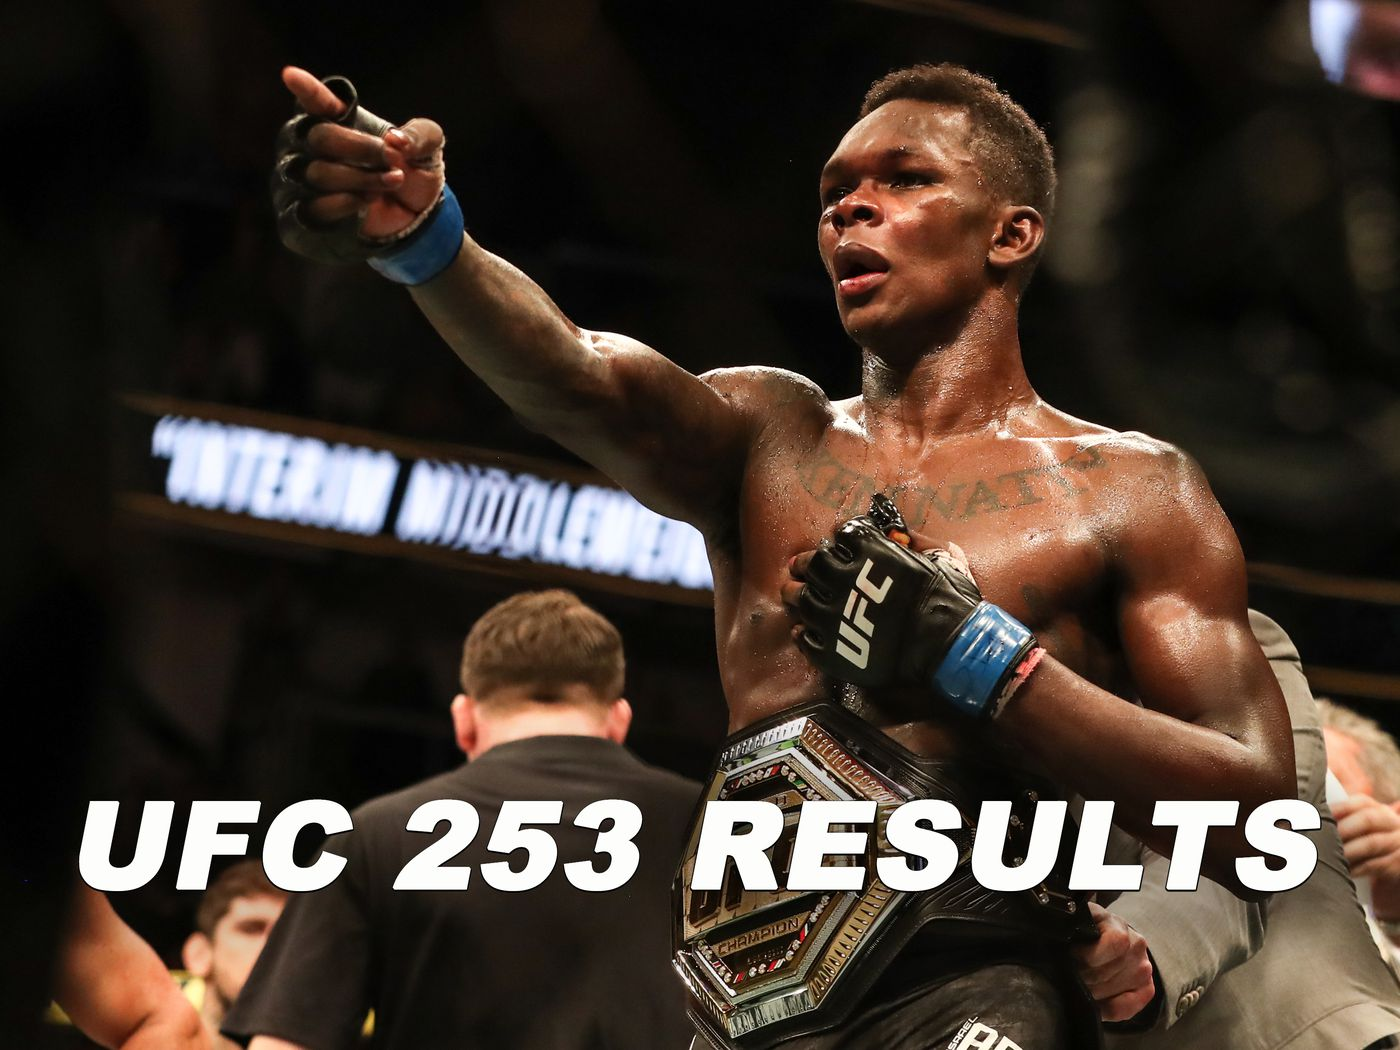 Ufc 253 Live Stream Results Play By Play Updates For Adesanya Vs Costa Mmamania Com